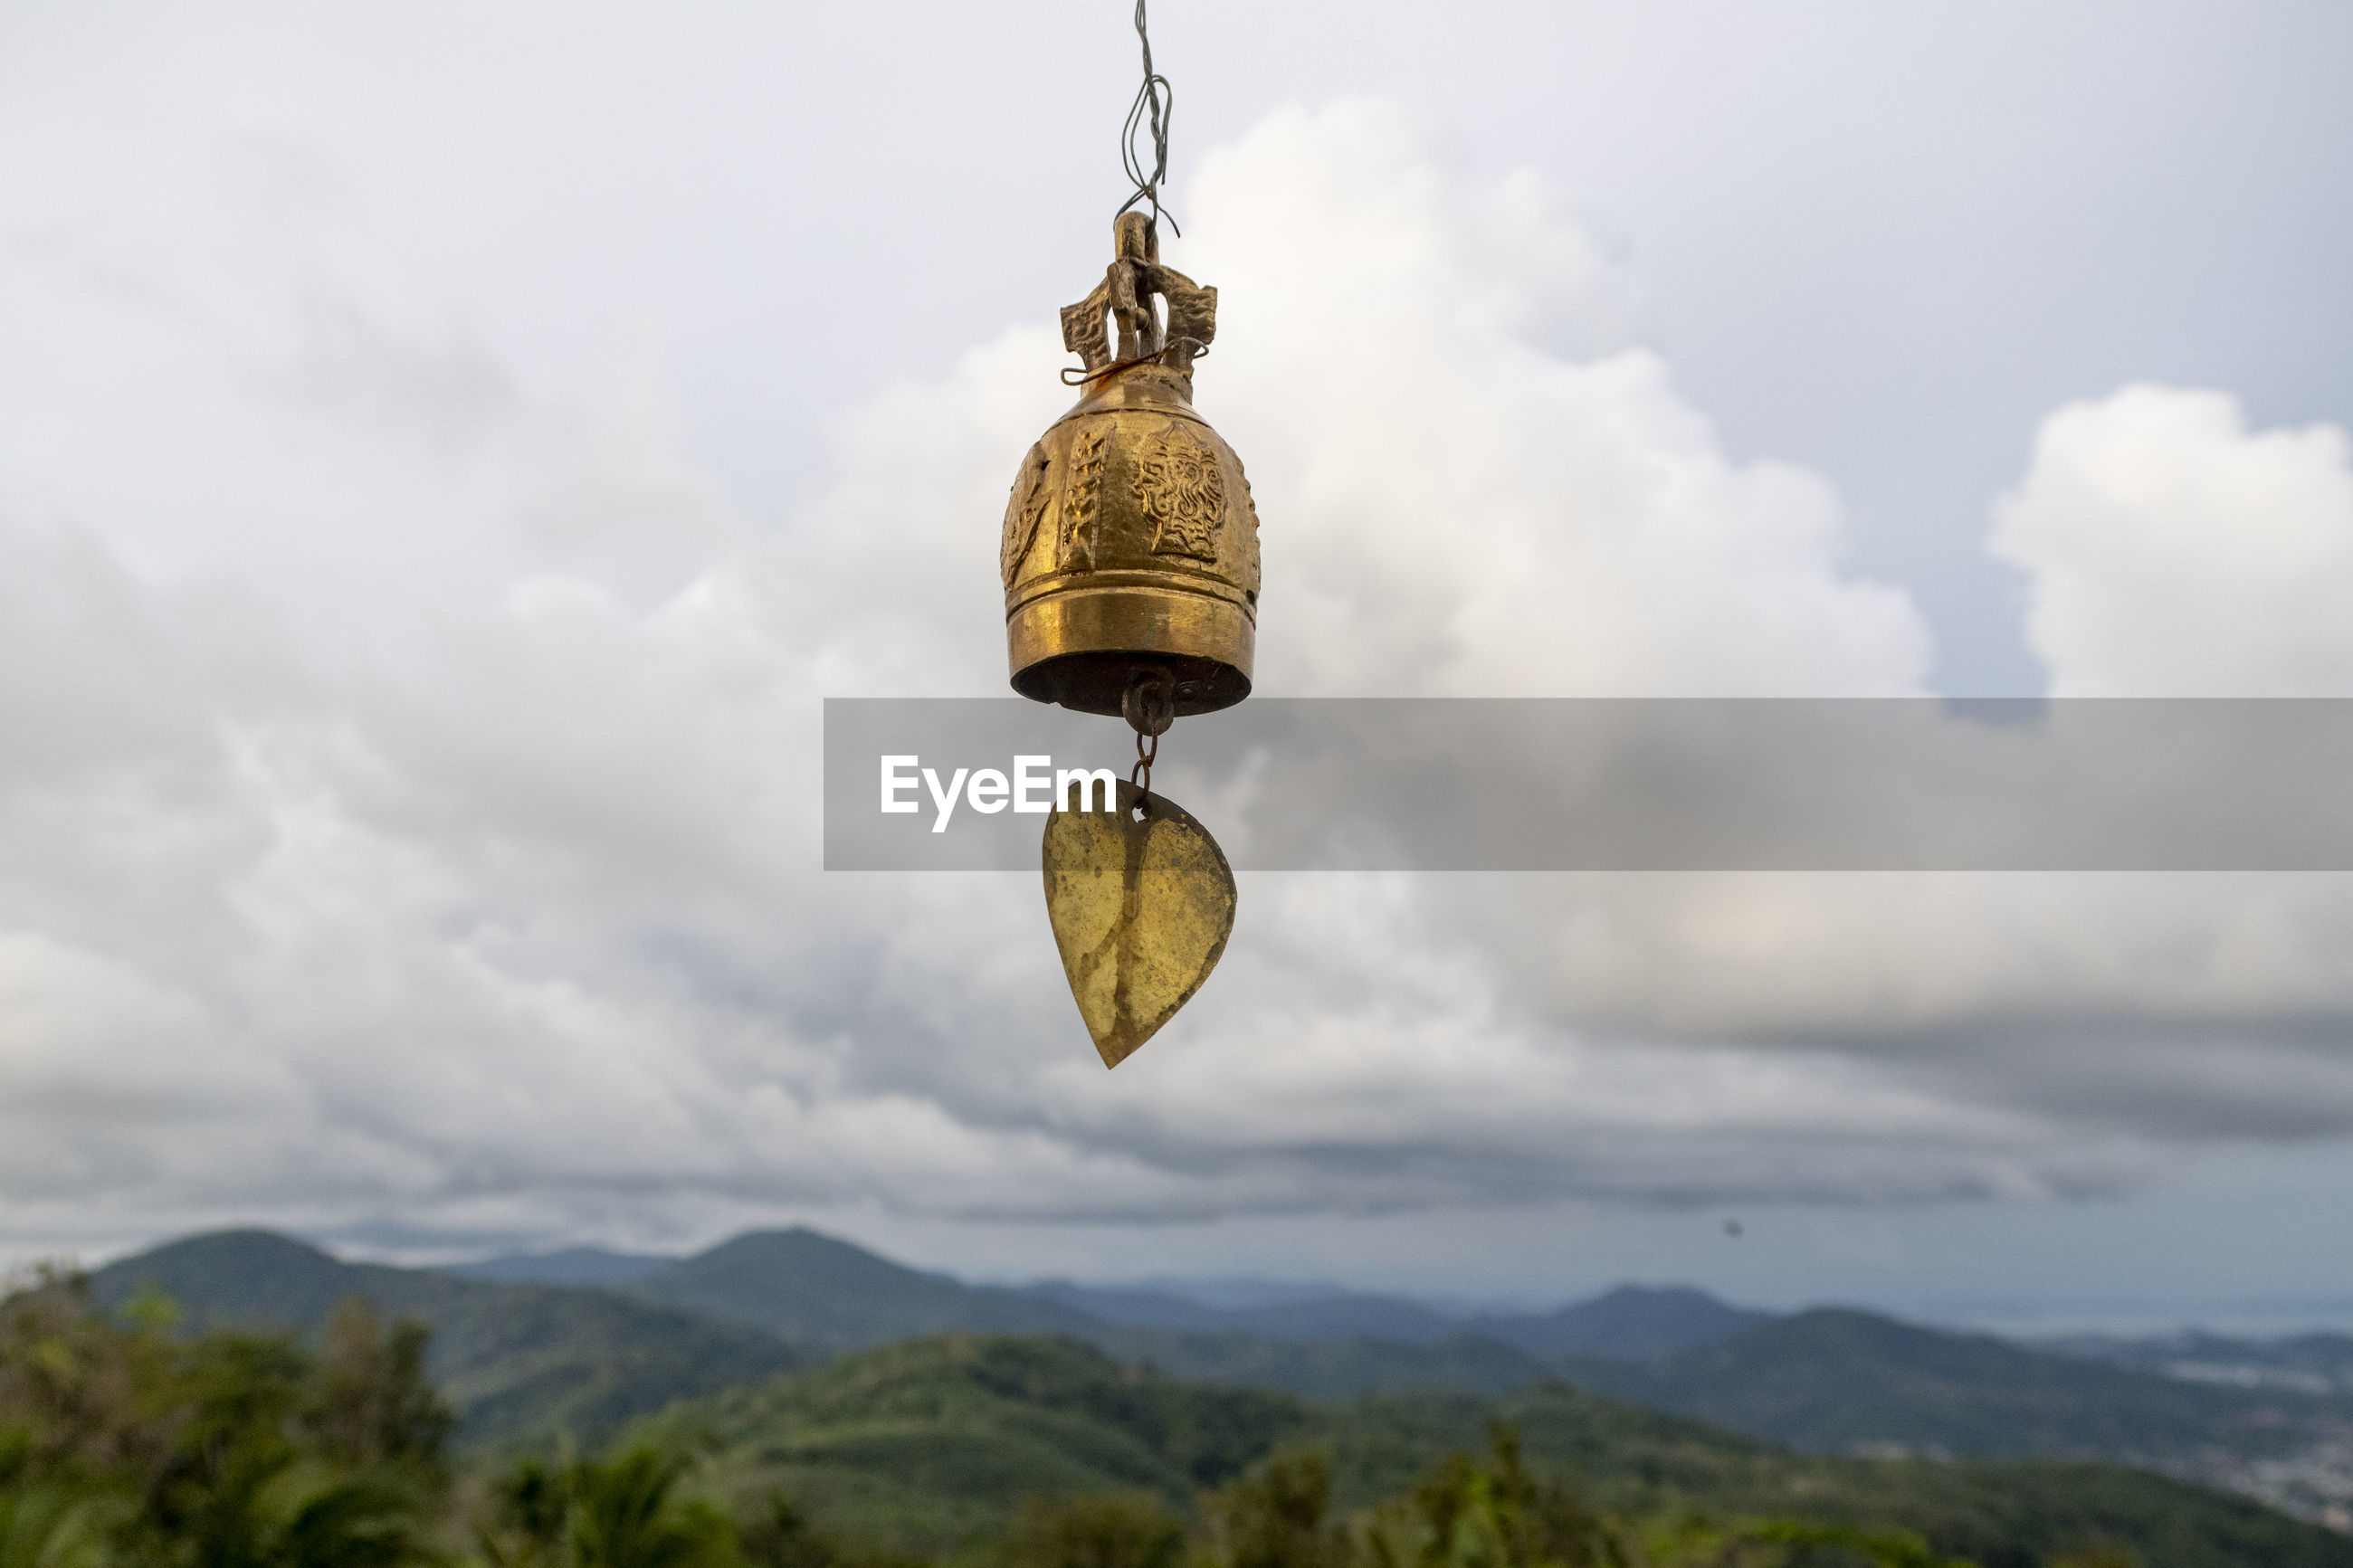 LOW ANGLE VIEW OF BELL HANGING AGAINST SKY